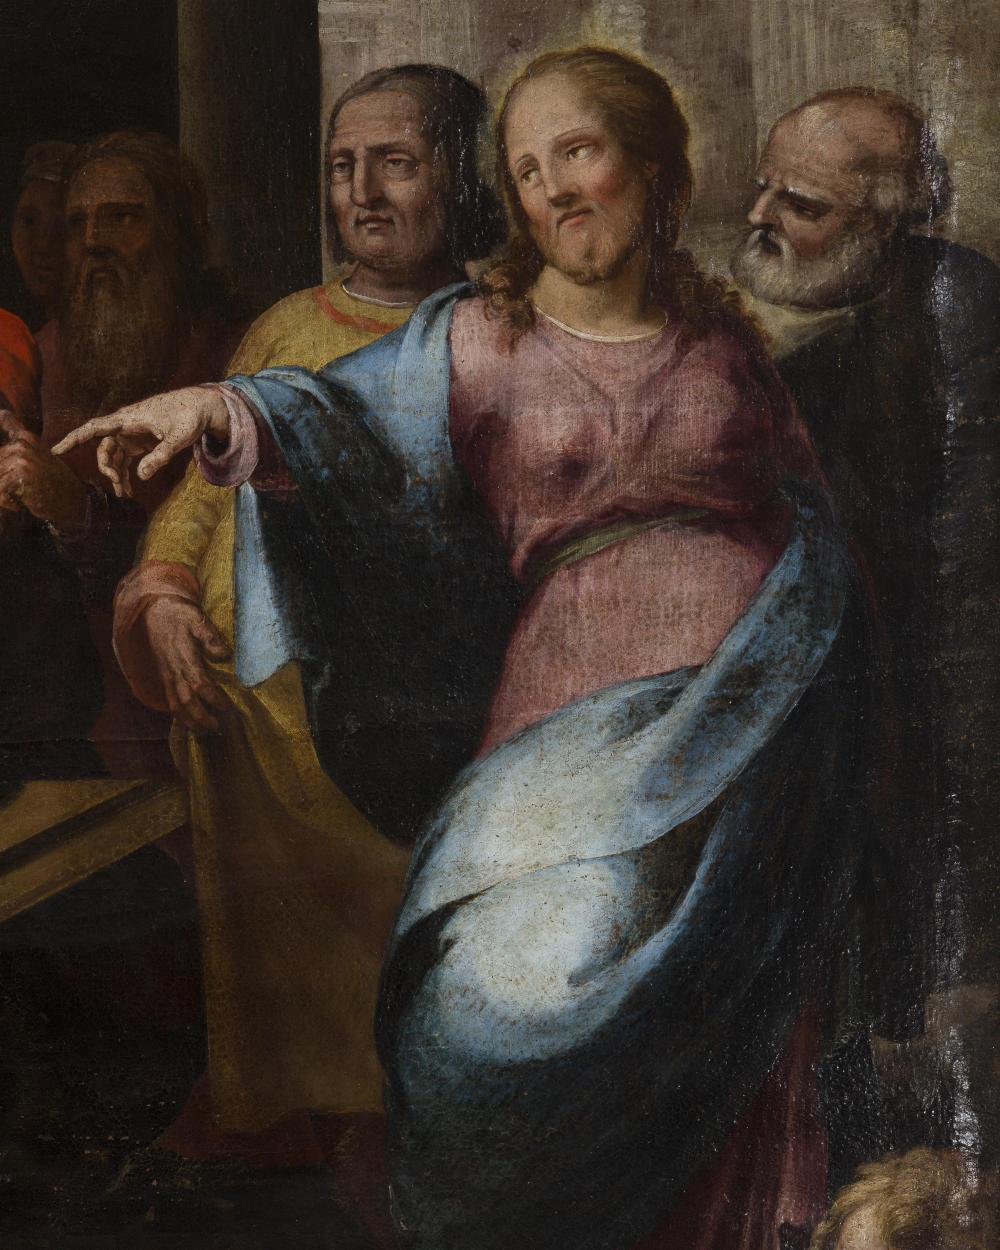 Jesus Christ in an interior with figures